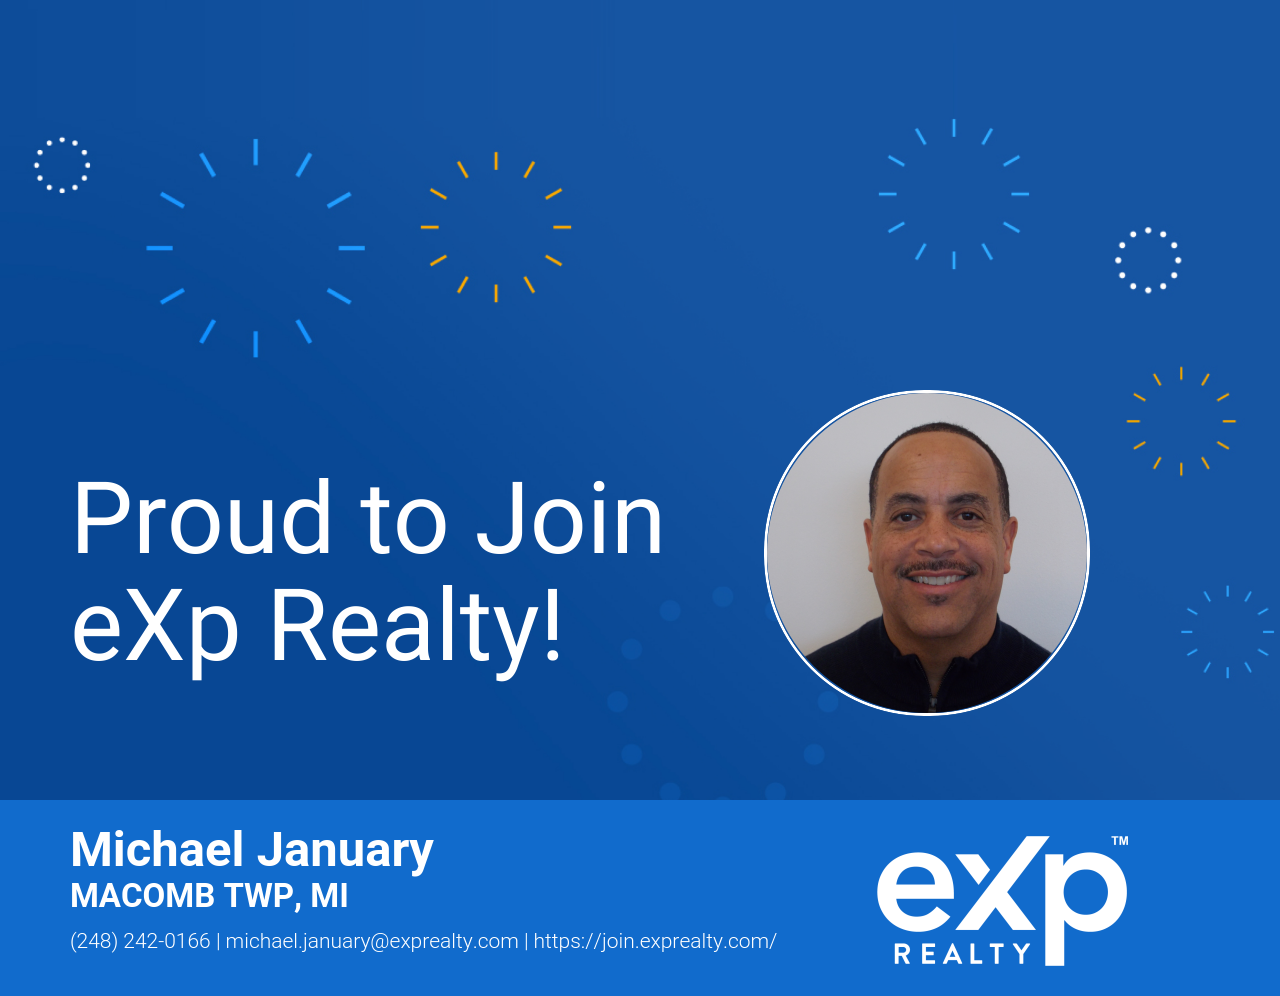 eXp Realty Welcomes Michael January!